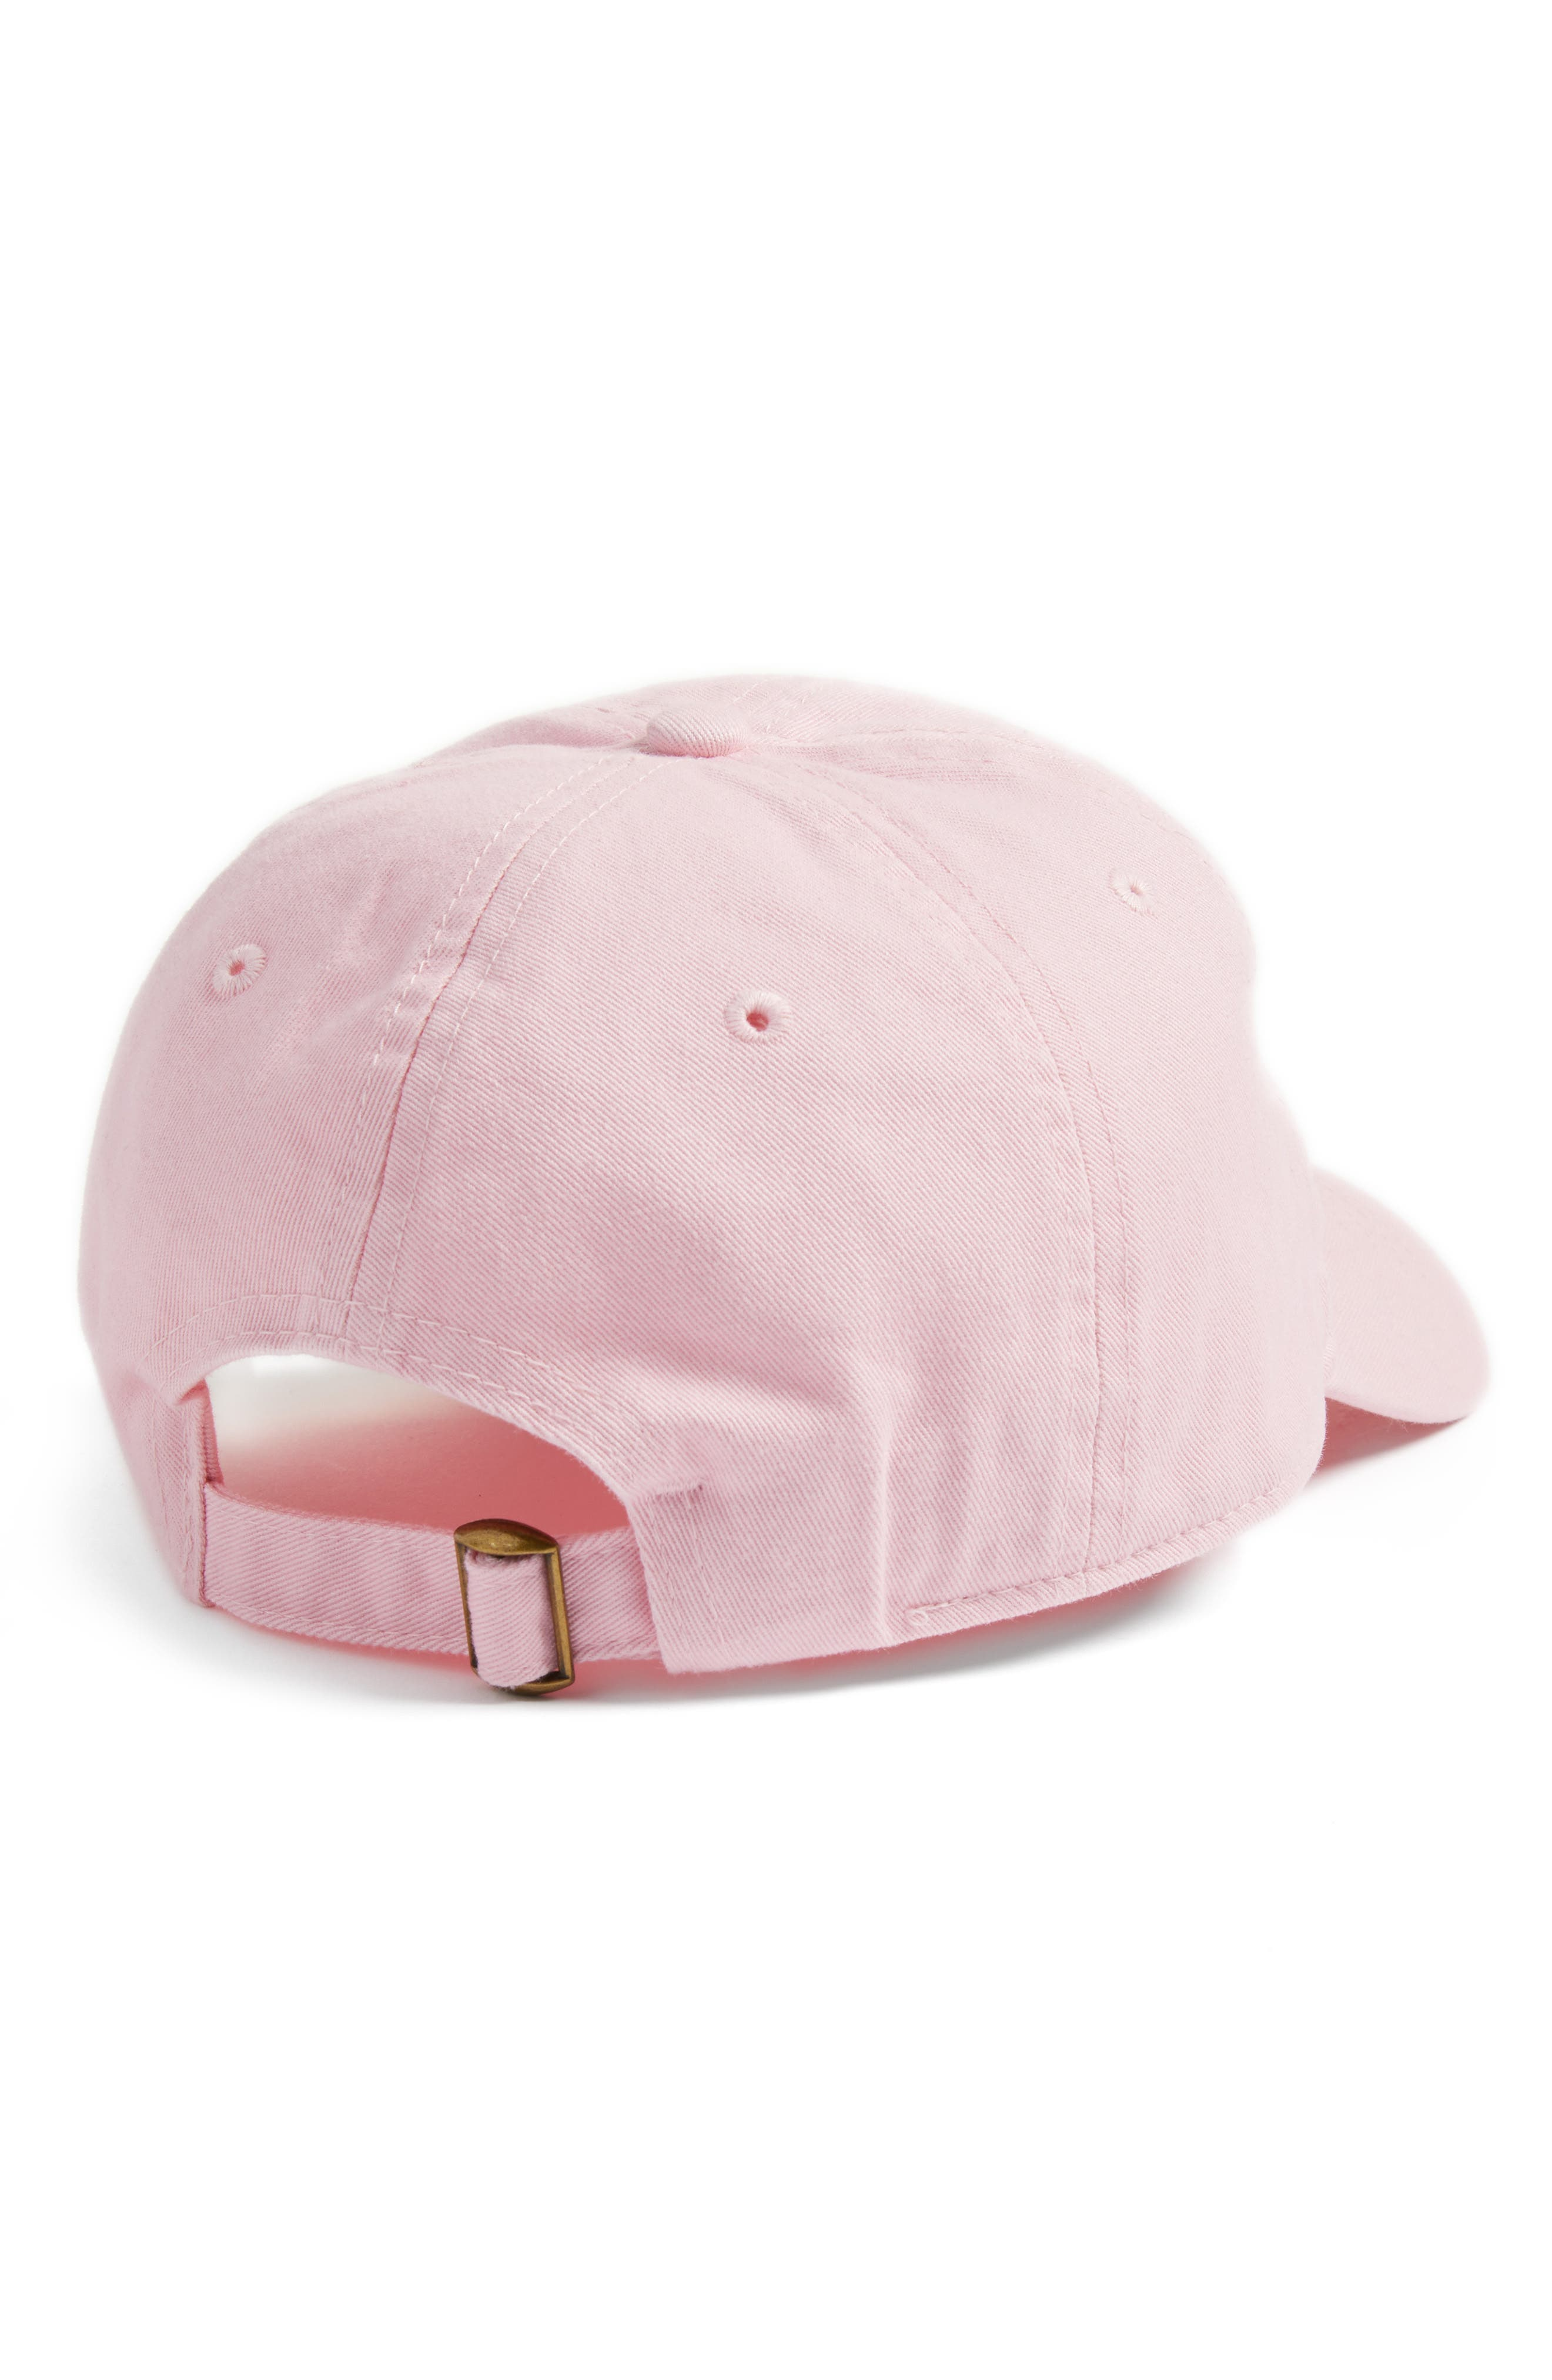 'I Know That Guac Is Extra' Cap,                             Alternate thumbnail 2, color,                             Pink